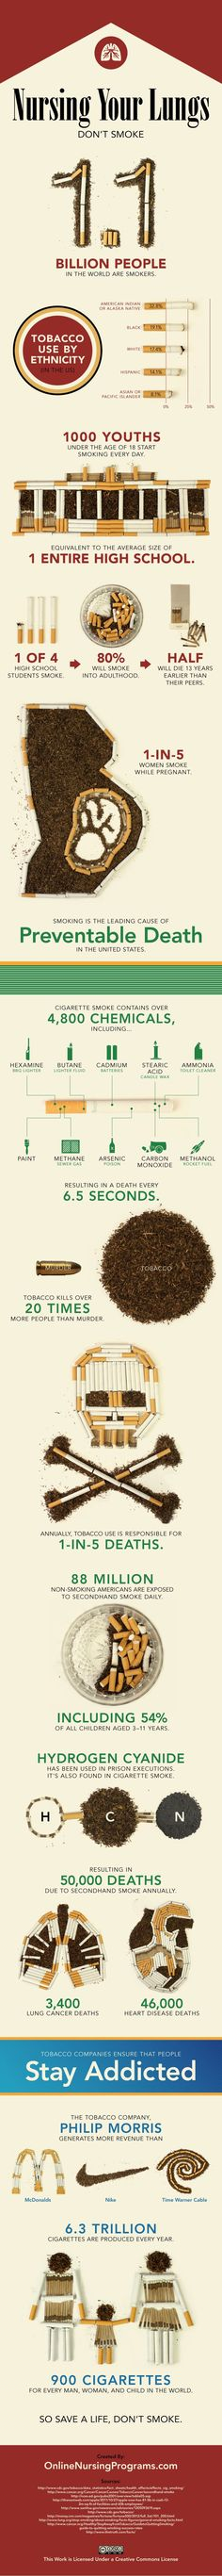 Smoking infographic developed by a nursing group. Read its effects on your lungs and society. #infographics